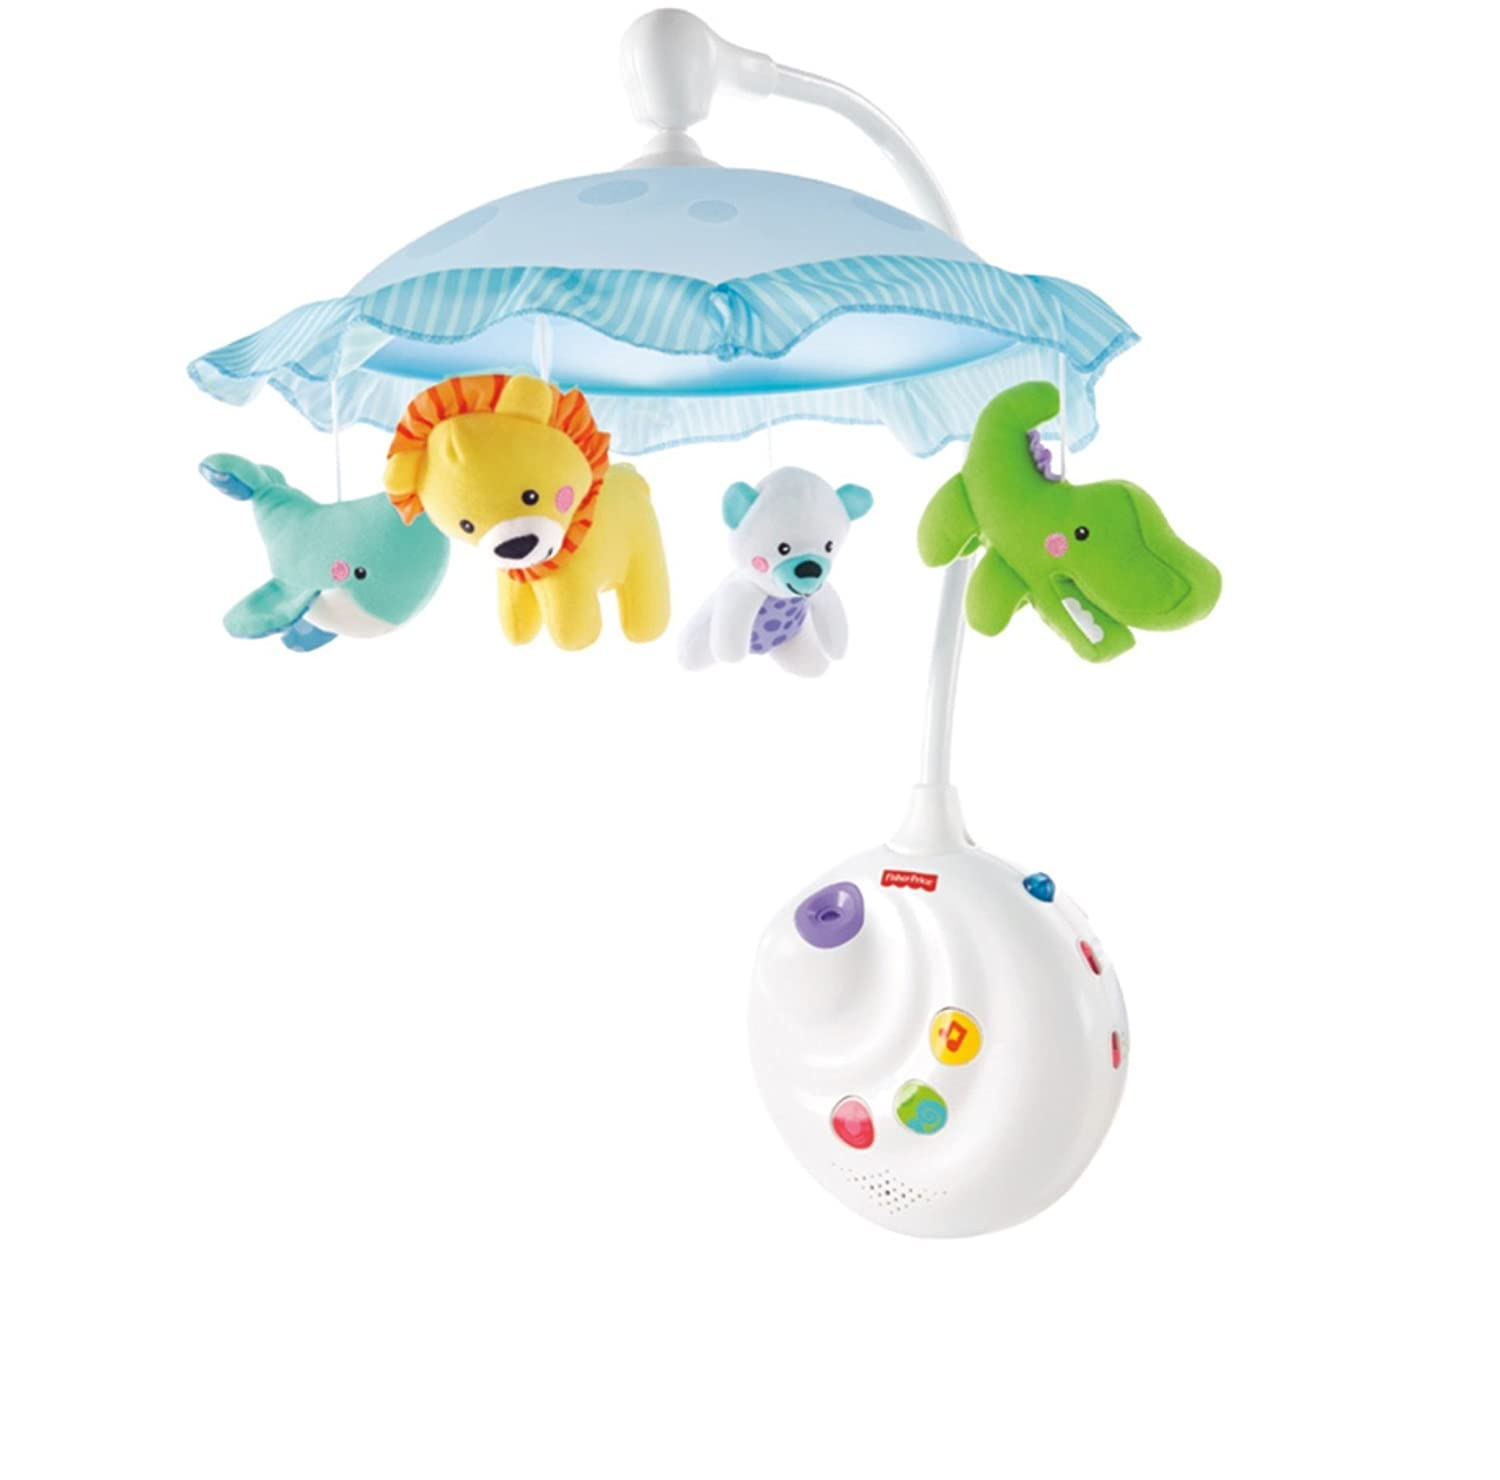 Top 10 Best Baby Mobiles For Nursery (2020 Reviews & Buying Guide) 7